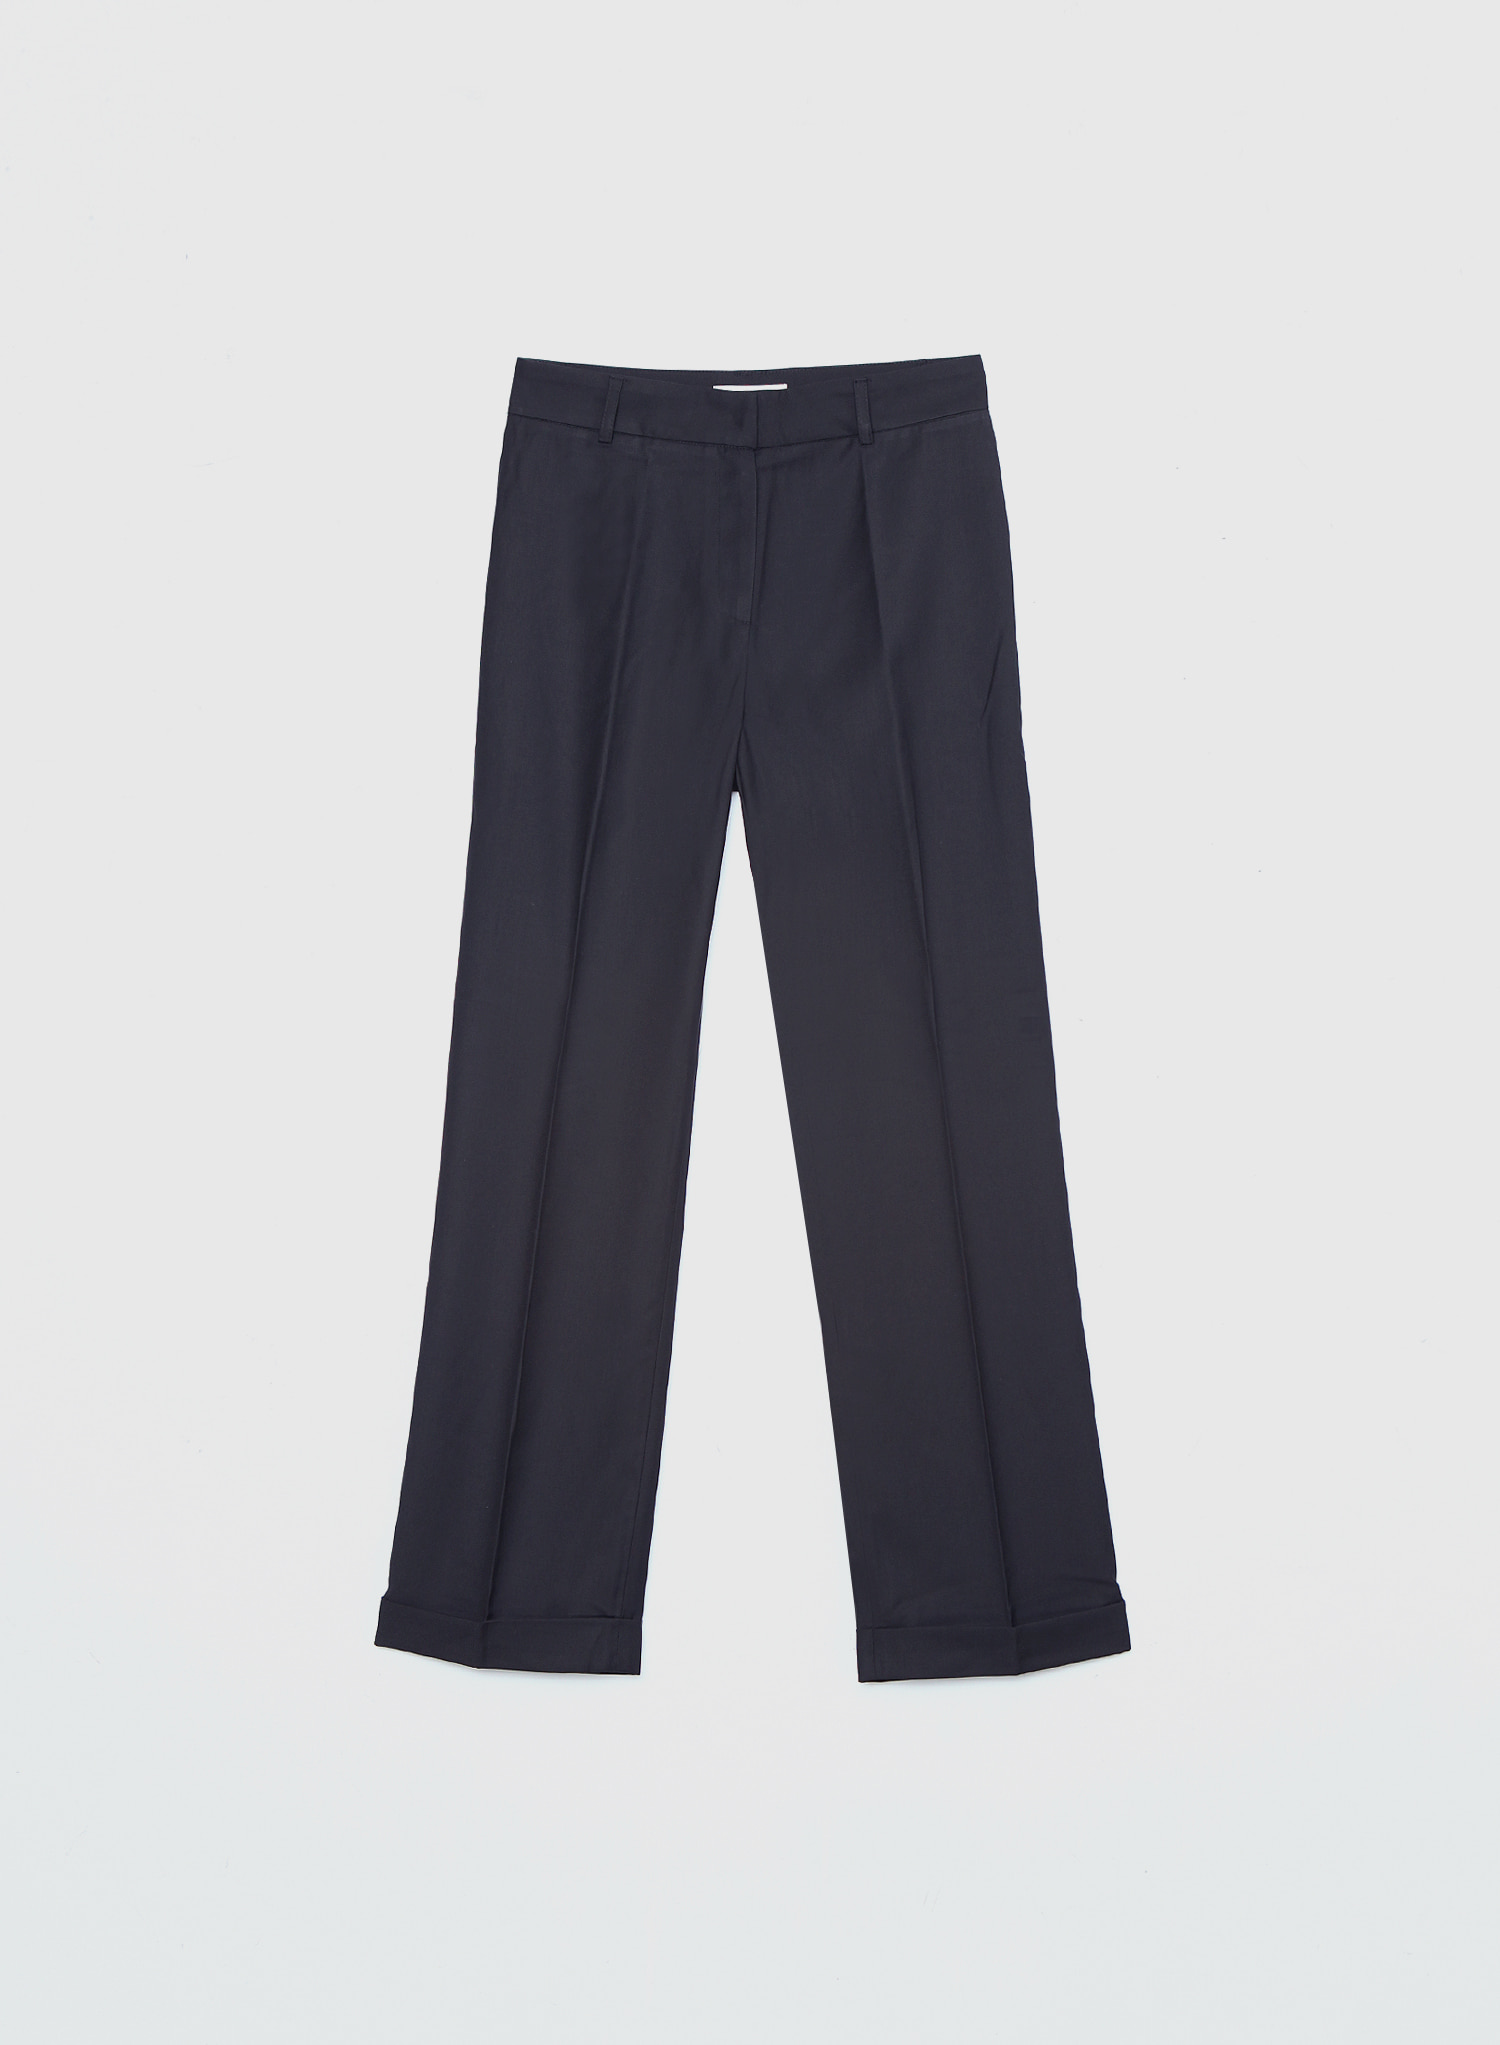 WOOL BLEND DOUBLE SLACKS